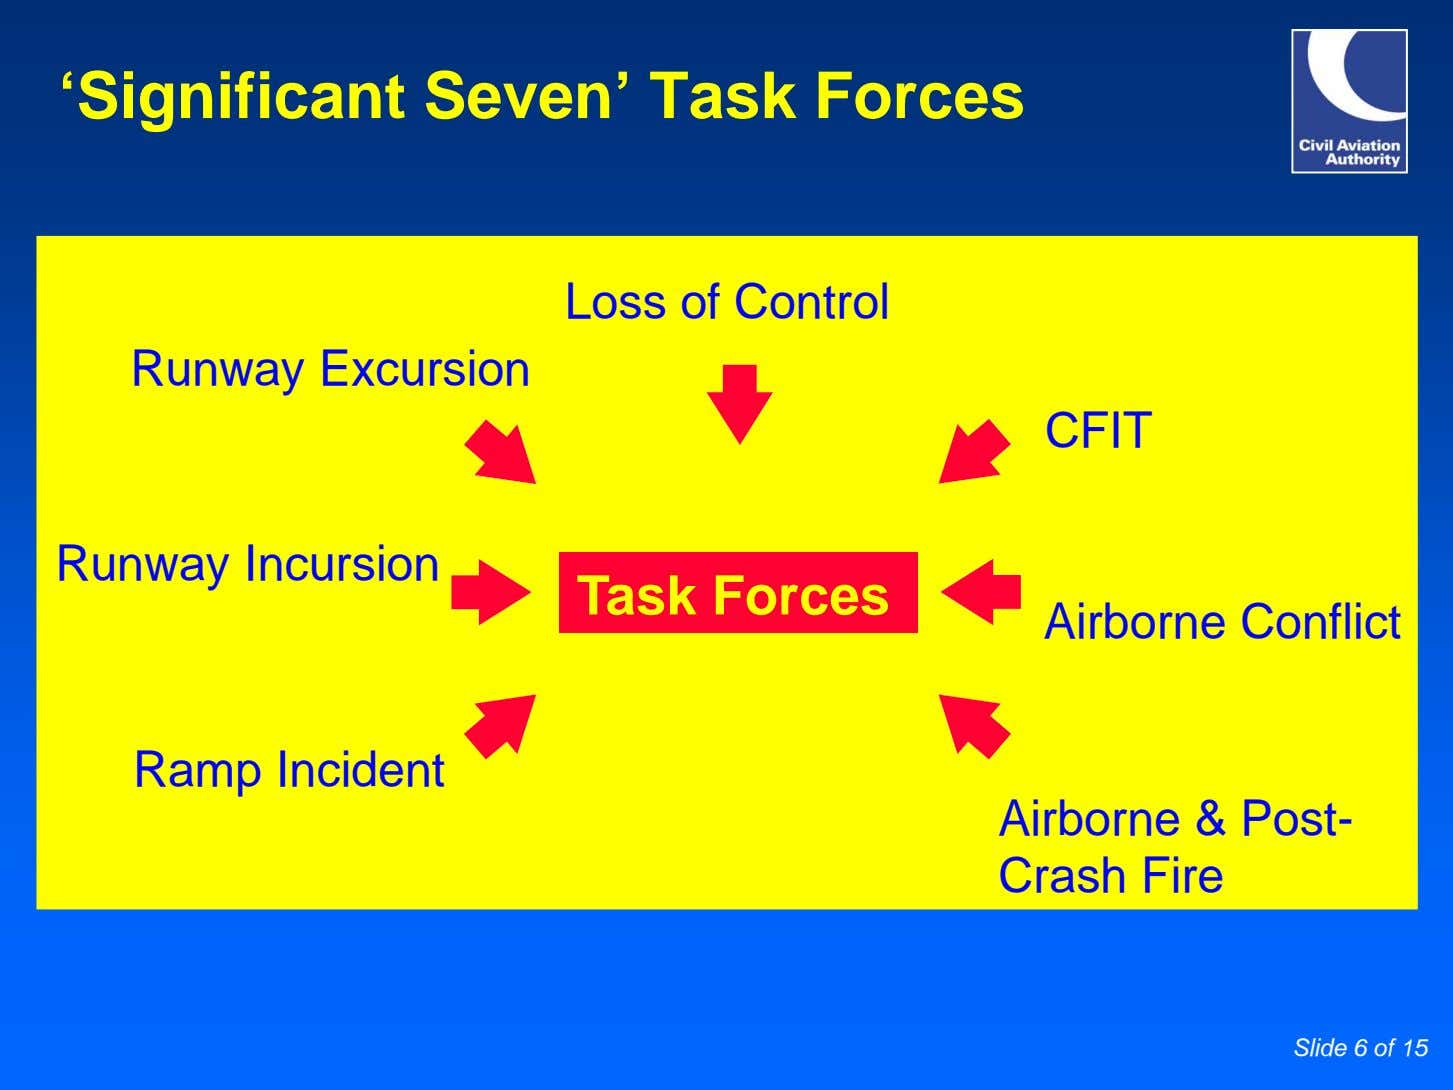 'Significant Seven' Task Forces Loss of Control Runway Excursion CFIT Runway Incursion Task Forces Airborne